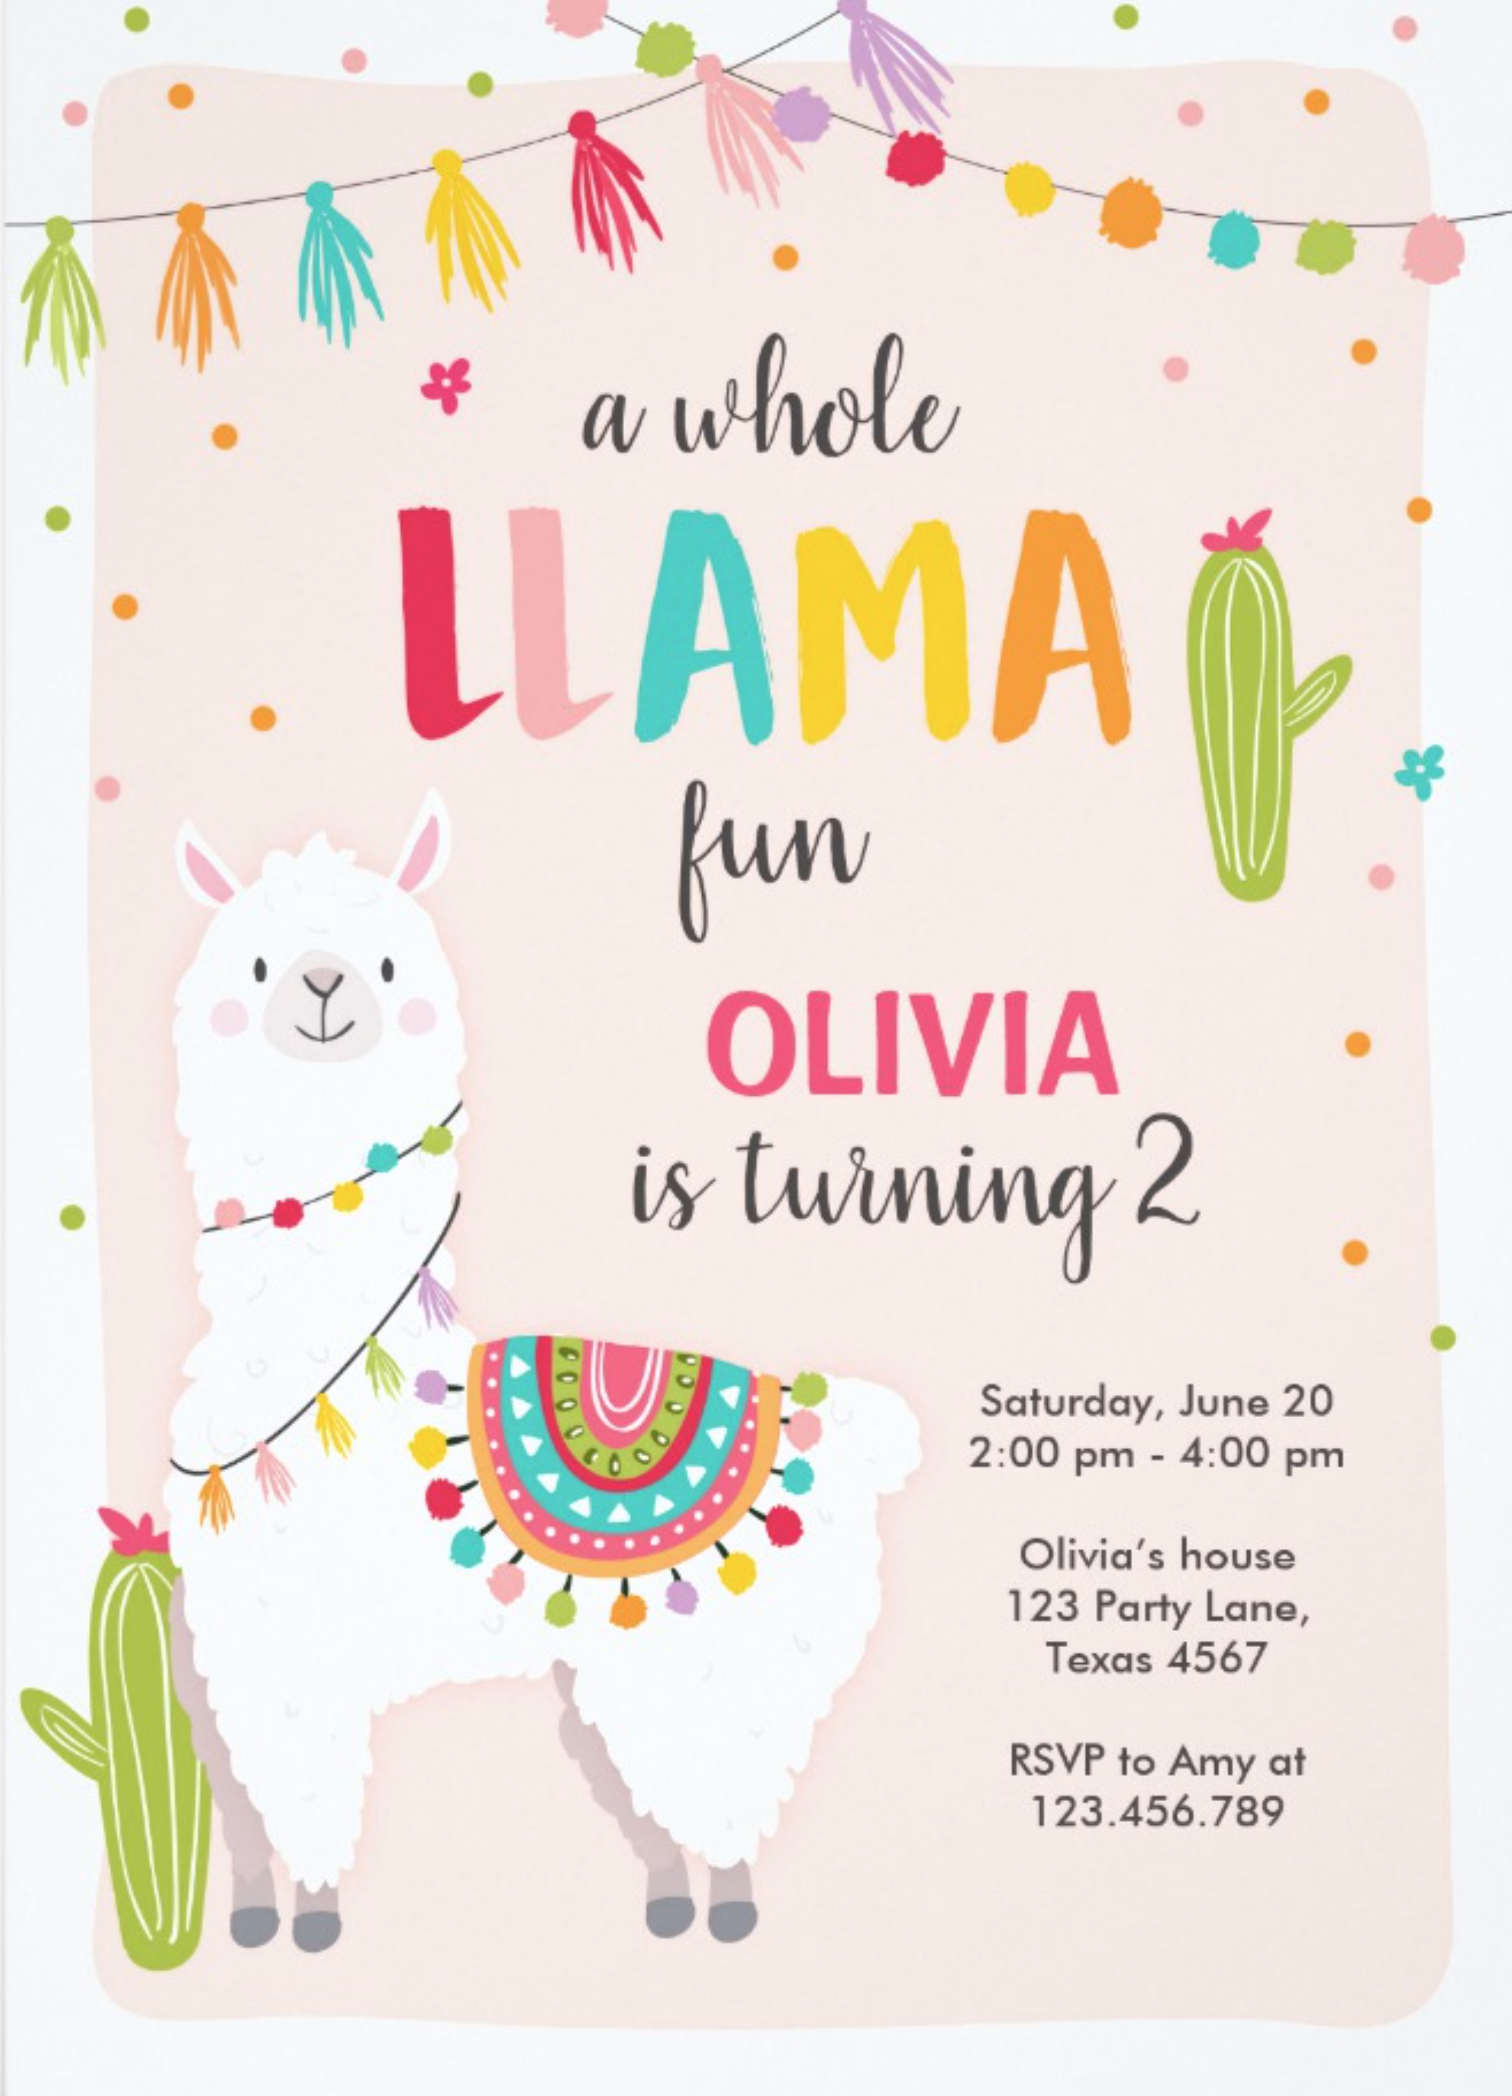 Whole Llama Fun Birthday Invitation Alpace Cactus Zazzle Com In 2020 Birthday Invitations Birthday Fun 2nd Birthday Parties